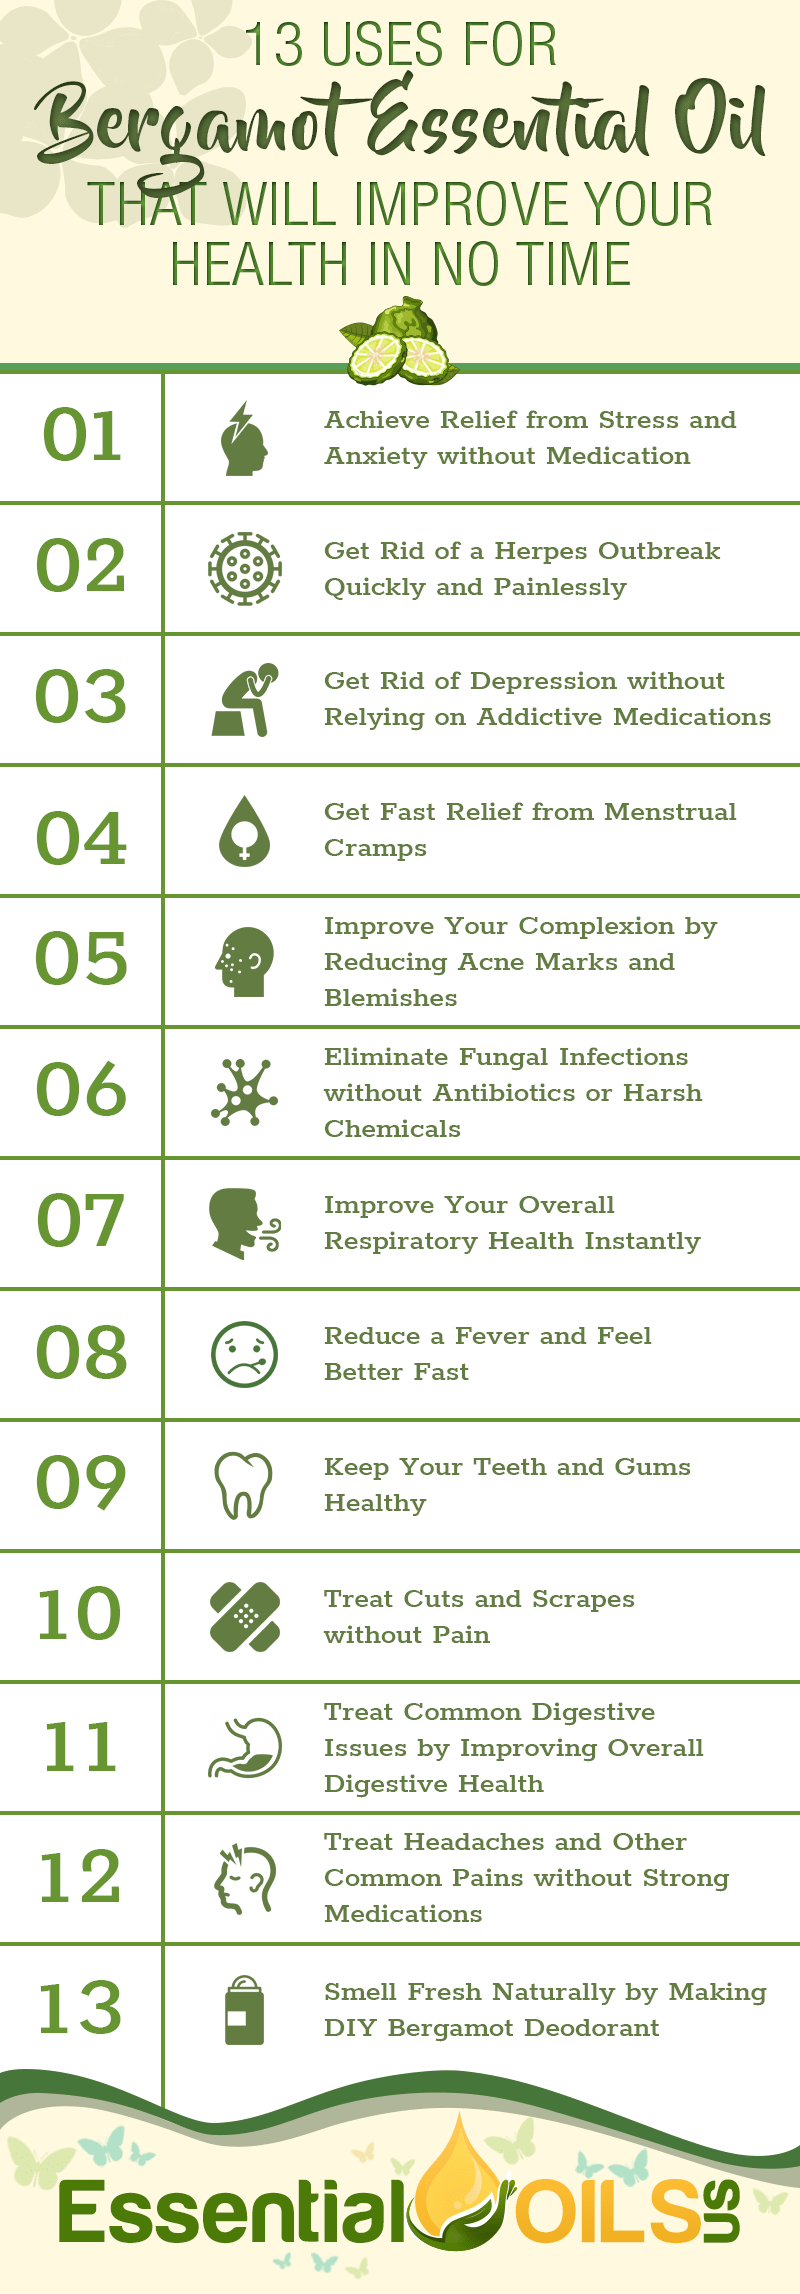 13 Uses For Bergamot Essential Oil That Will Improve Your Health In No Time  Essential Oils